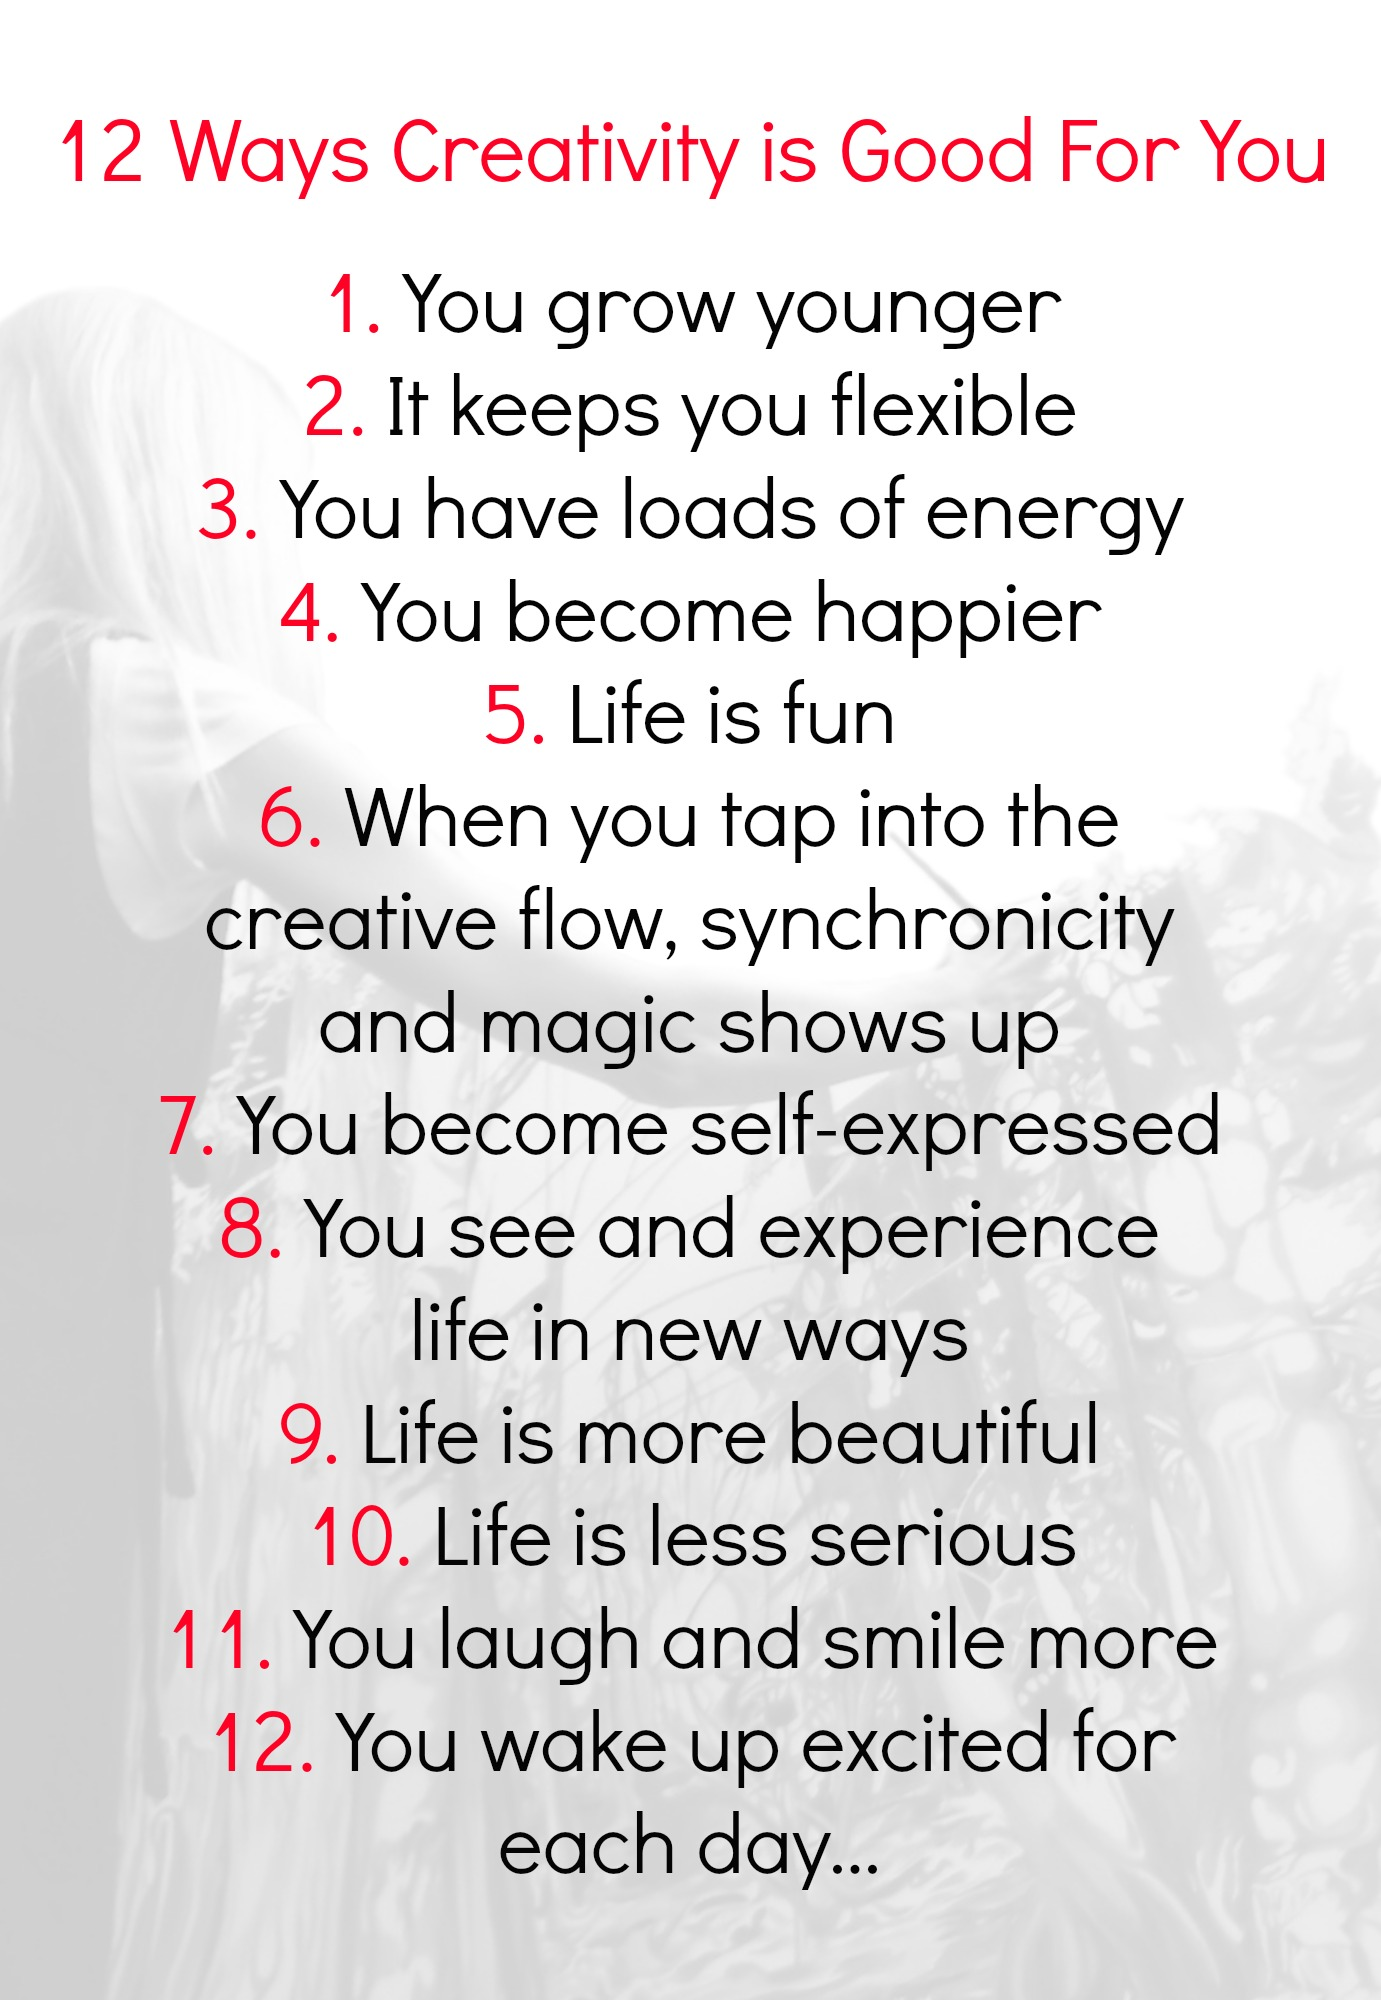 12 Ways Creativity Is Good For You